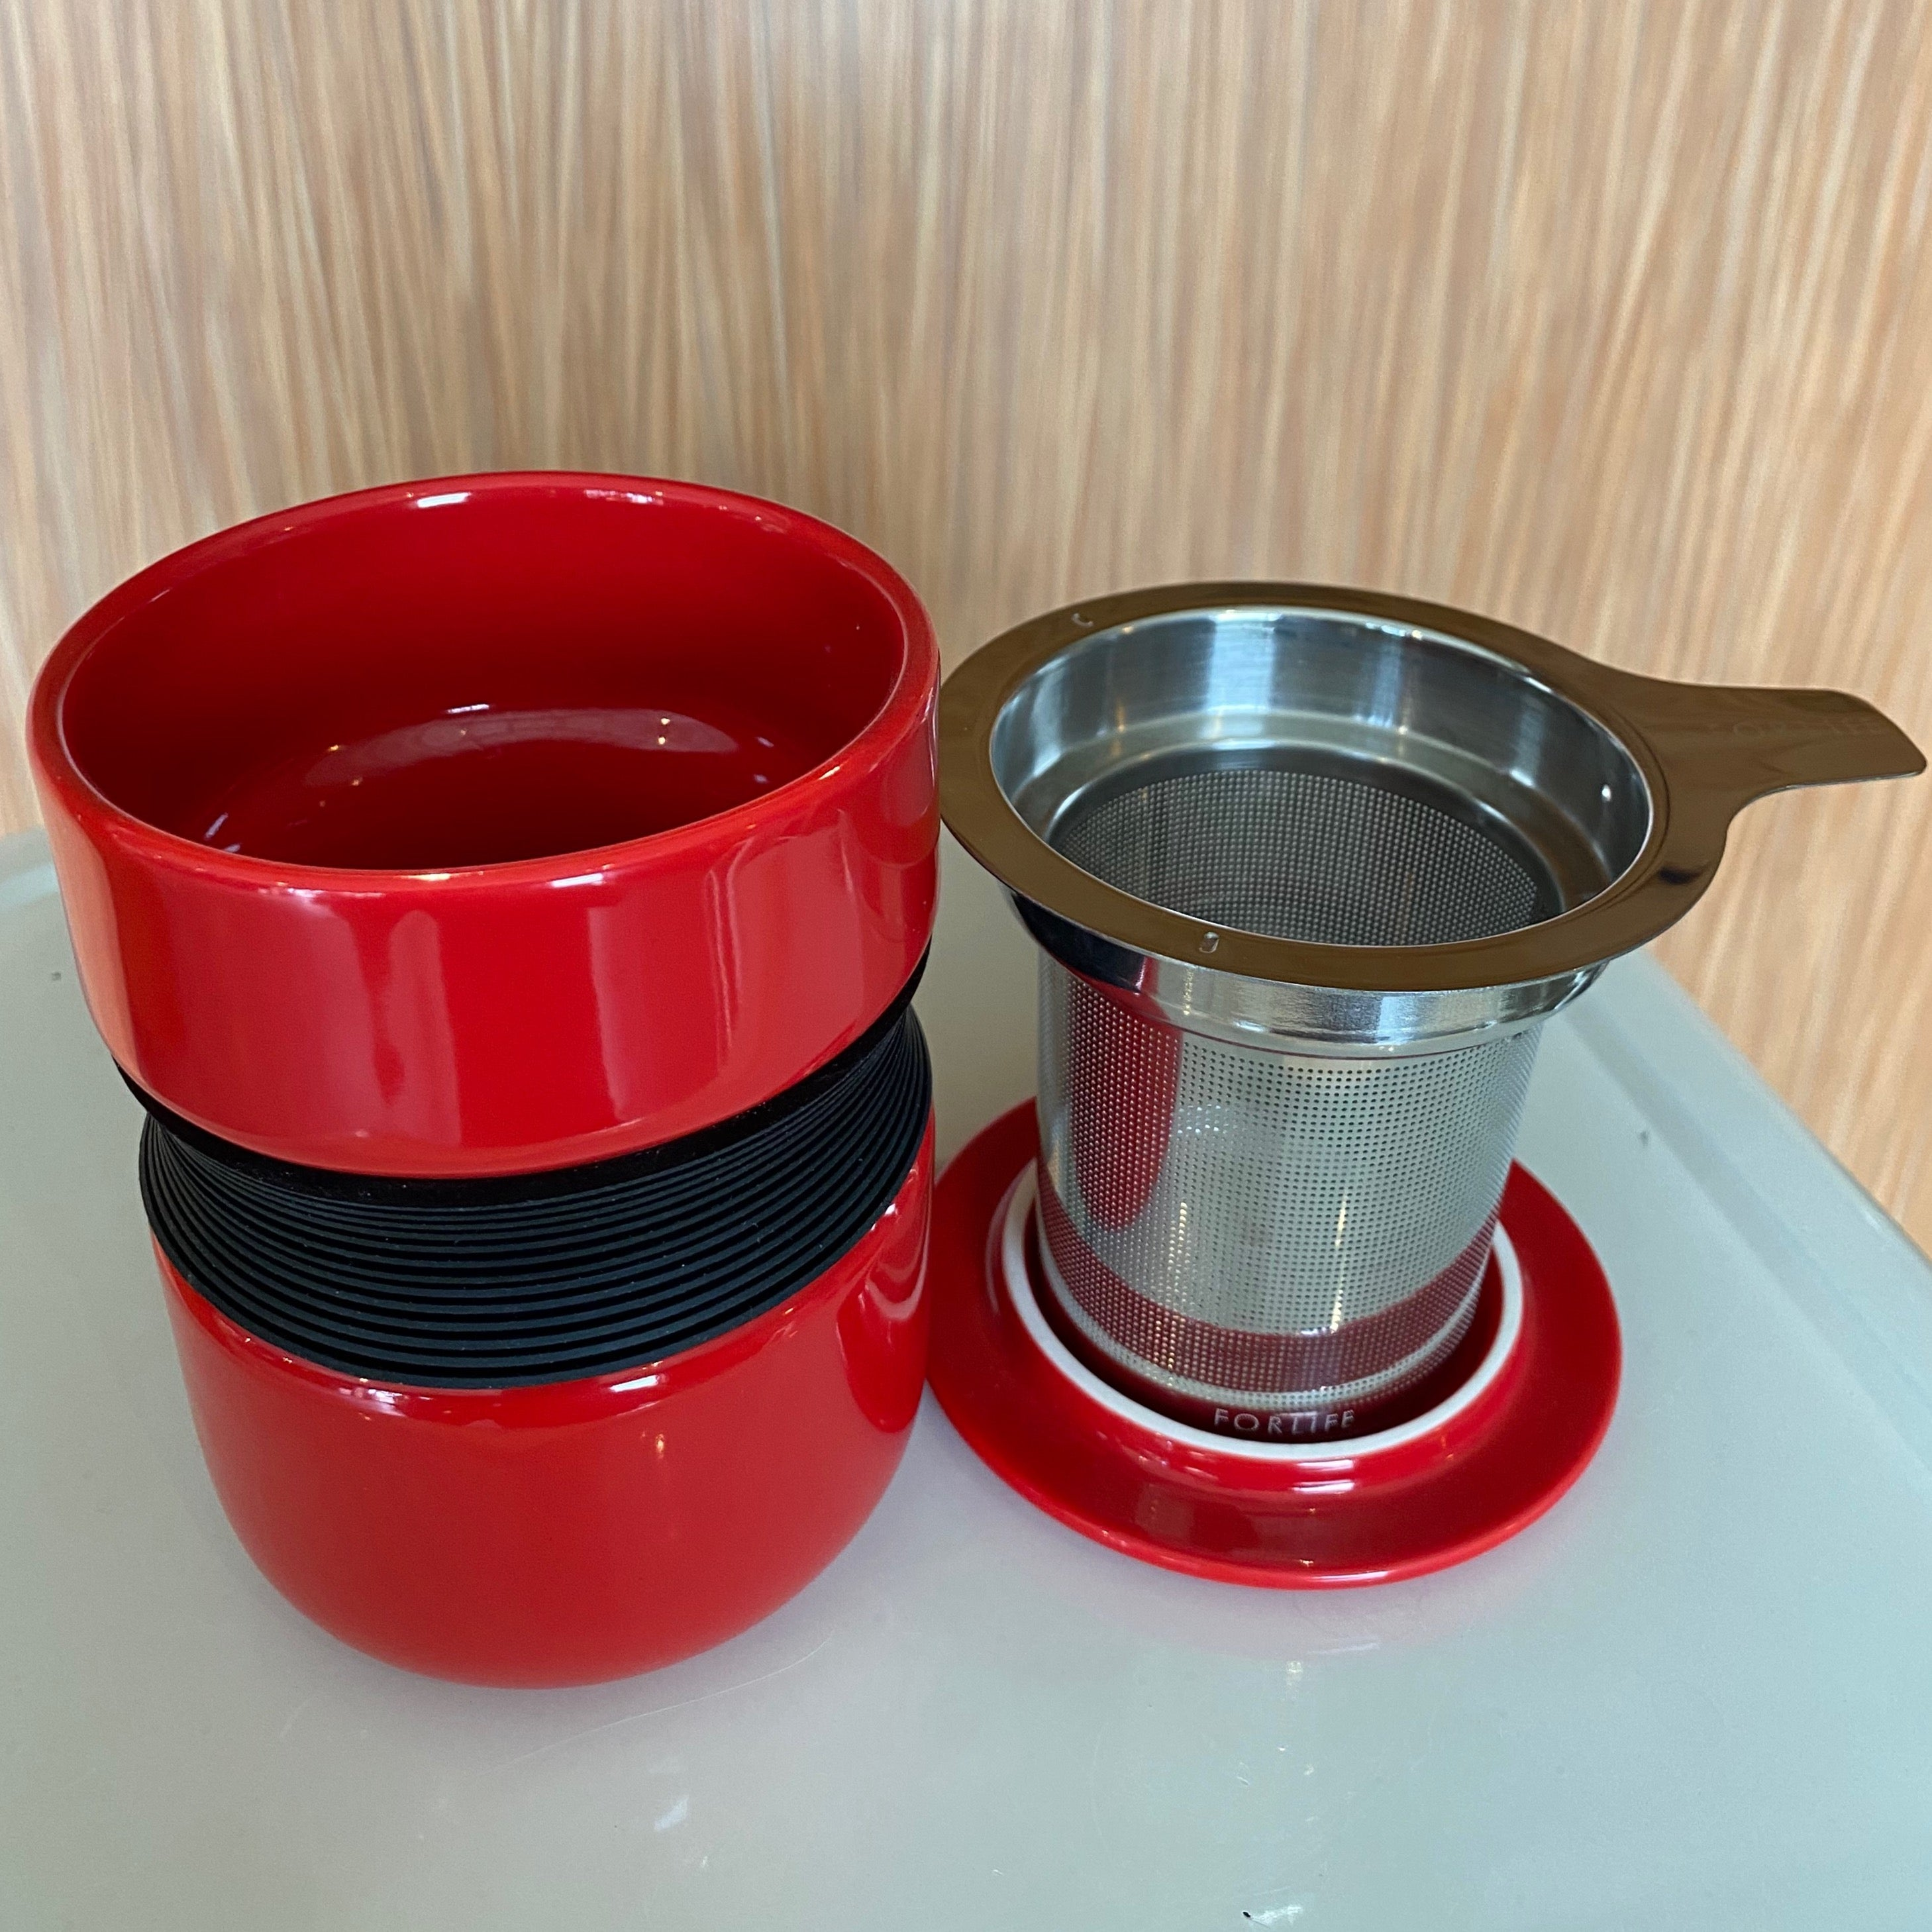 Red Asian style tea mug with infuser & lid, For Life brand